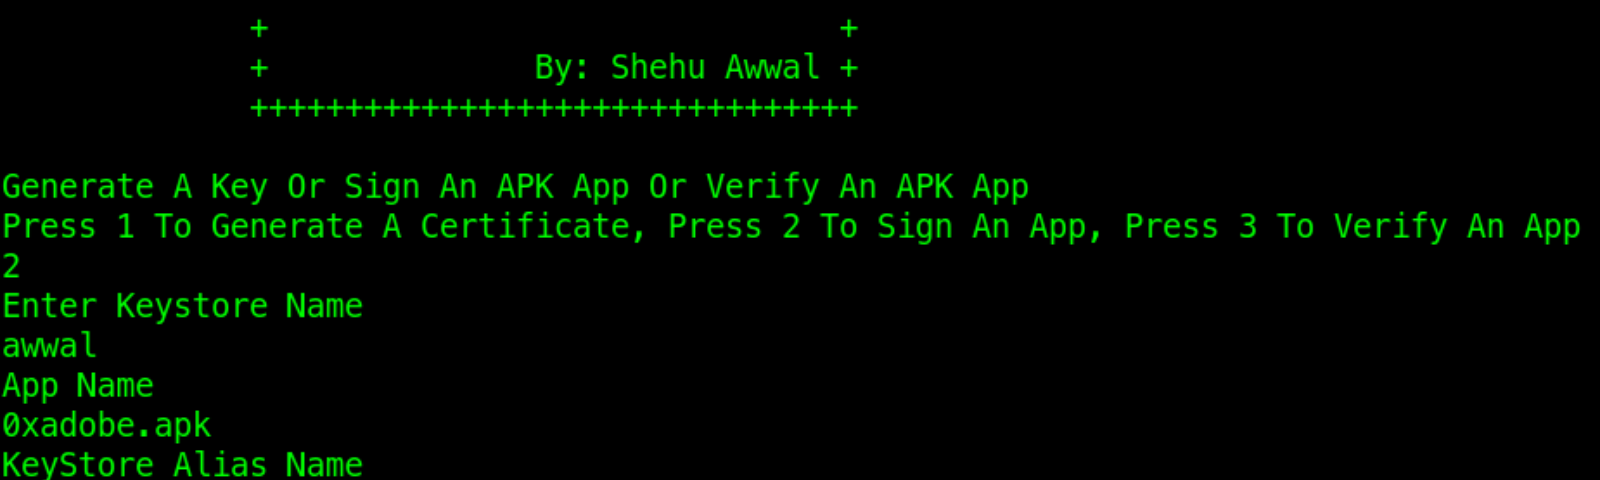 Android Certificate: Generate, Sign And Verify An Apk App